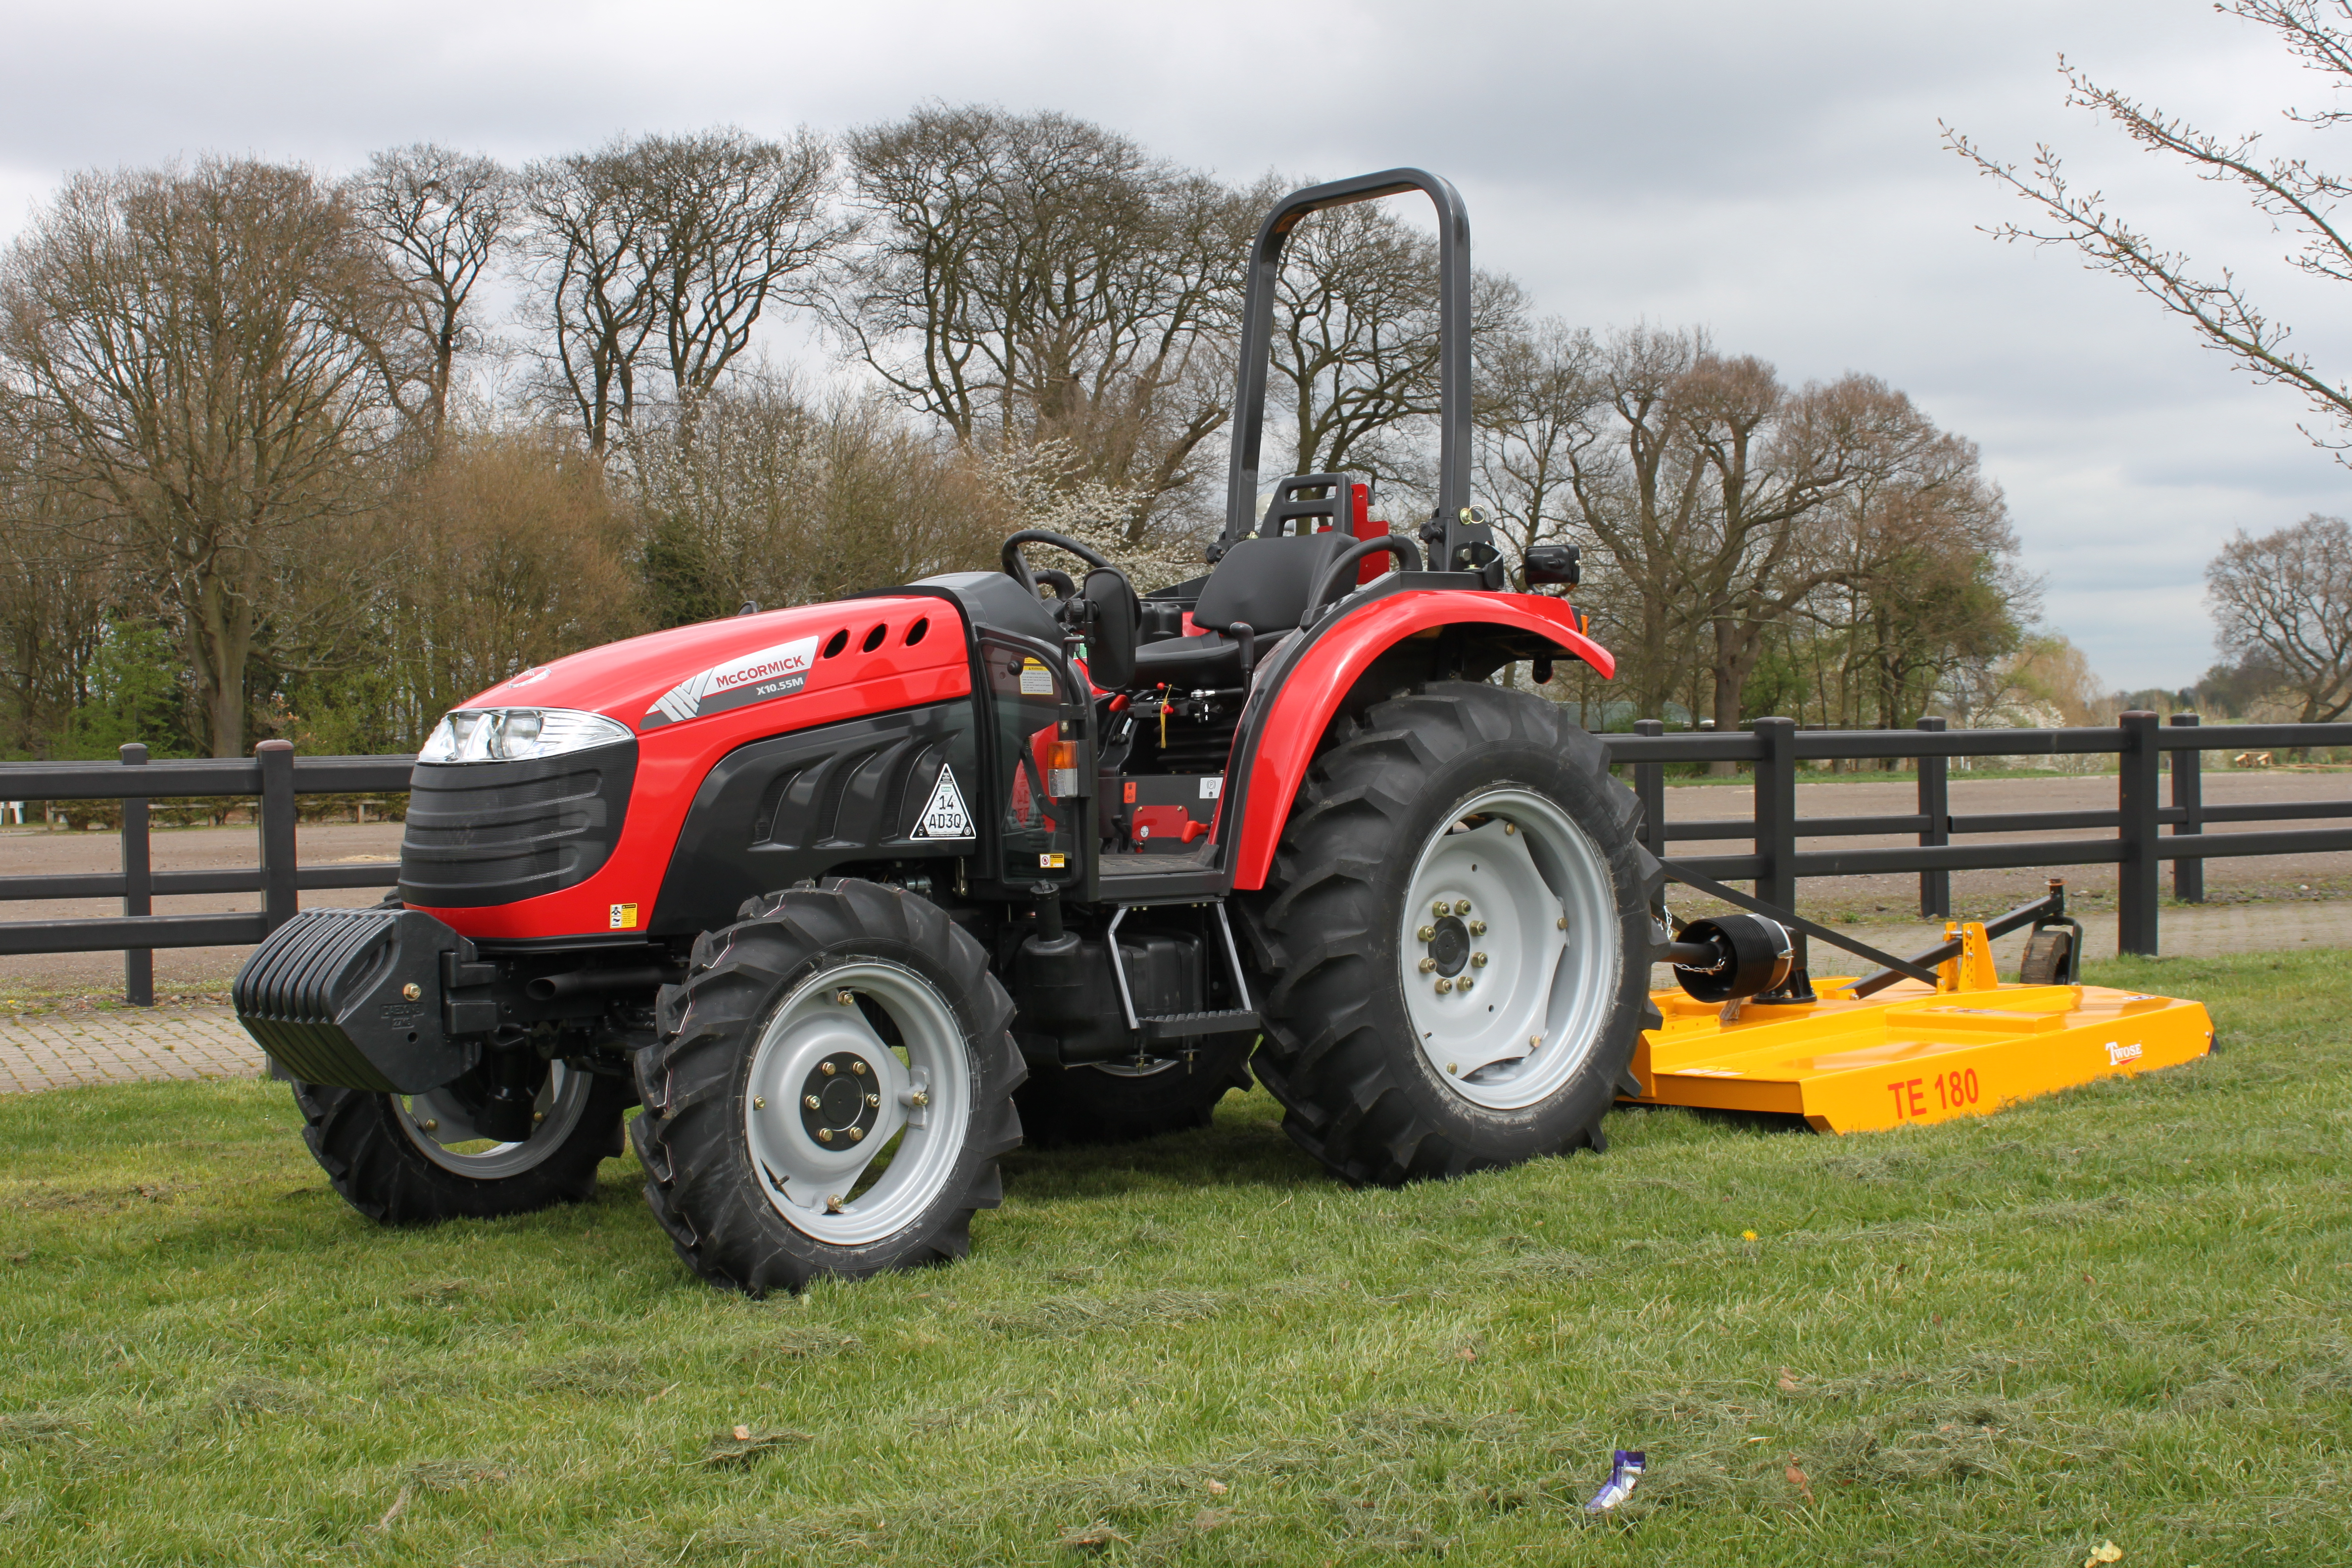 Horticultural tractor test drive